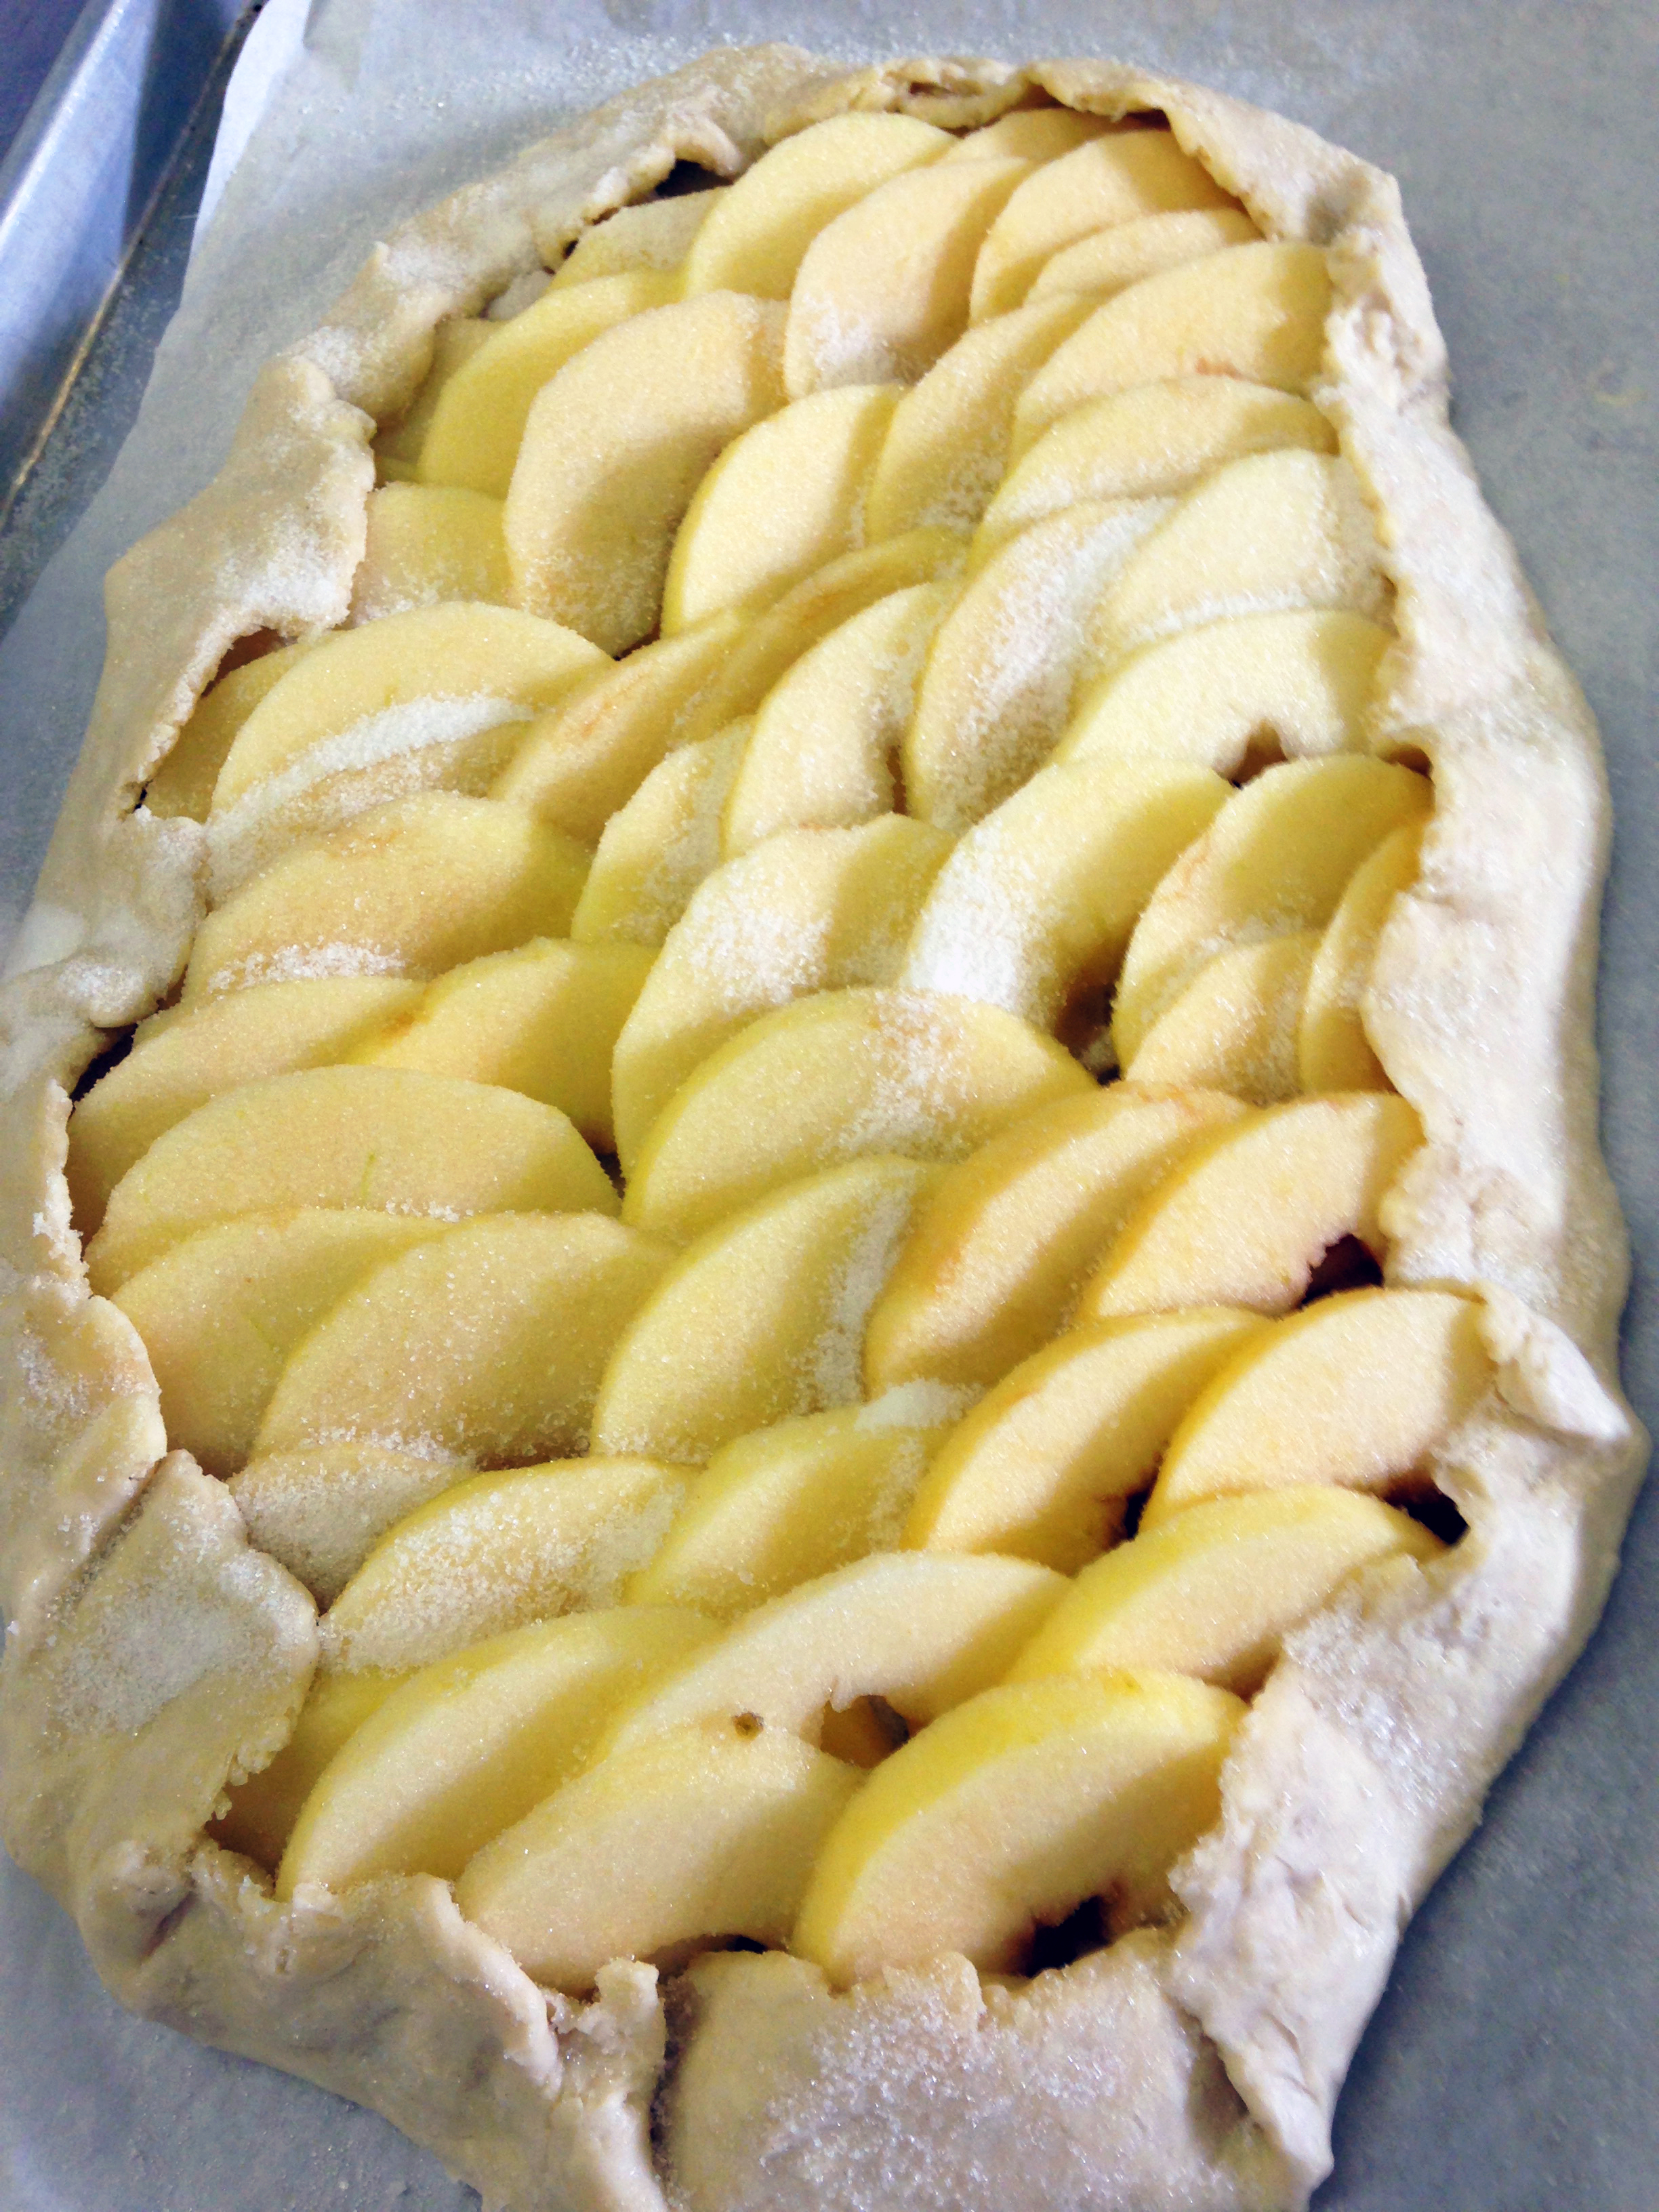 After this apple tart was baked, it was glazed with apricot jam and calvados